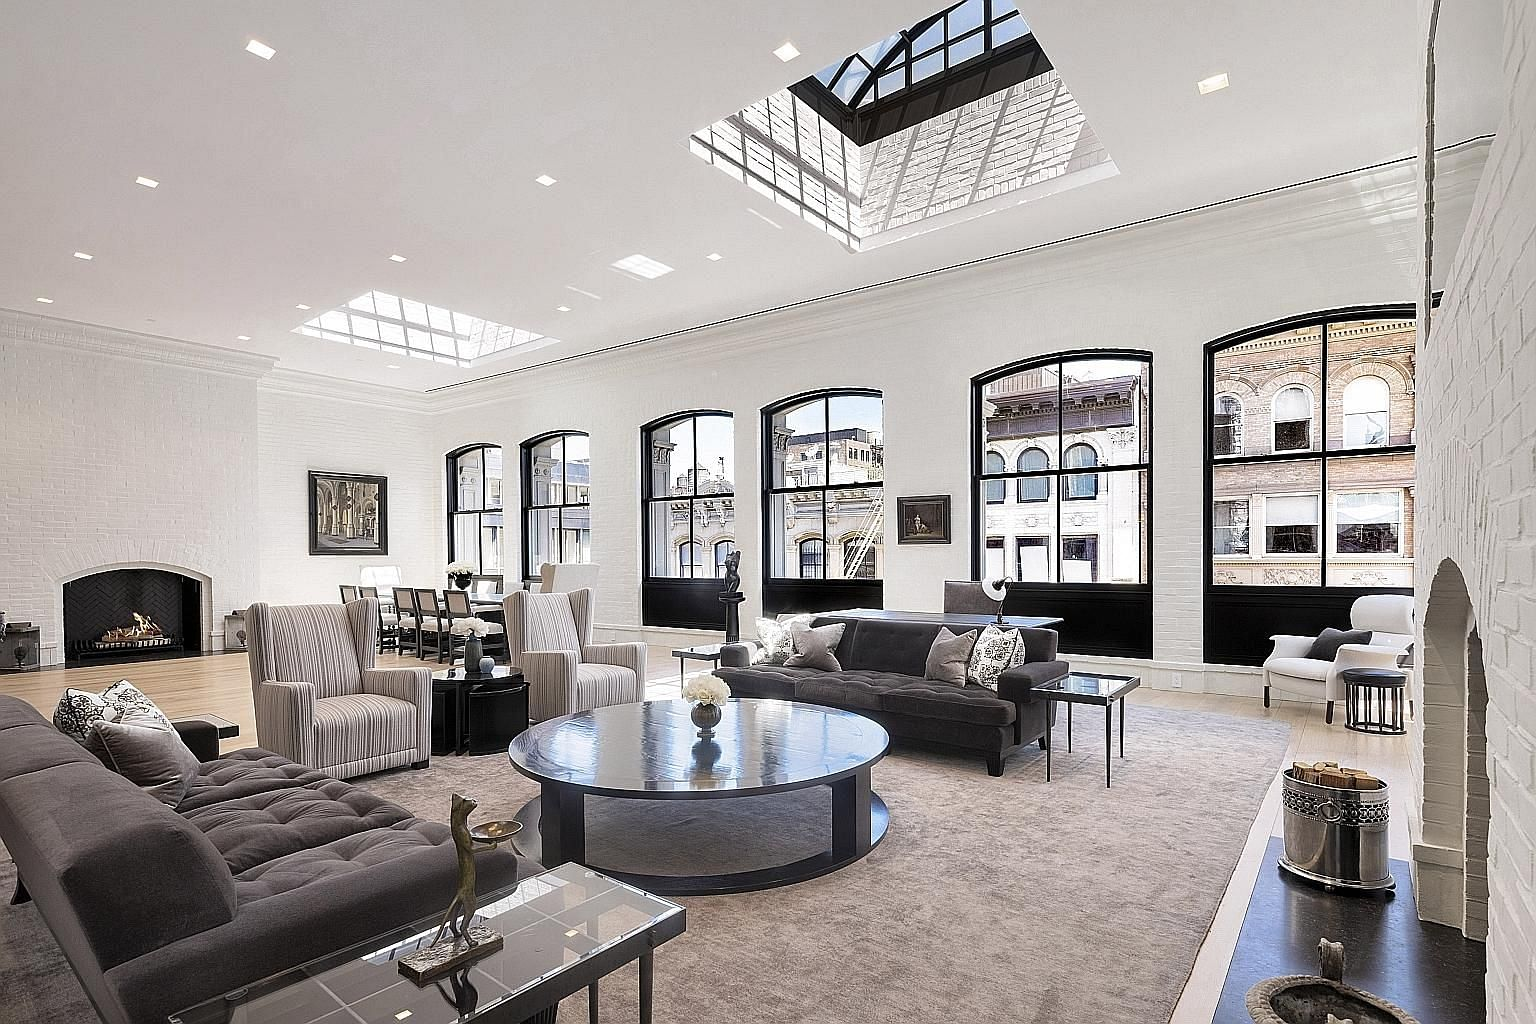 In a nod to the building's manufacturing past, industrial elements, such as steel in the skylights, have been incorporated into the penthouse over the years.